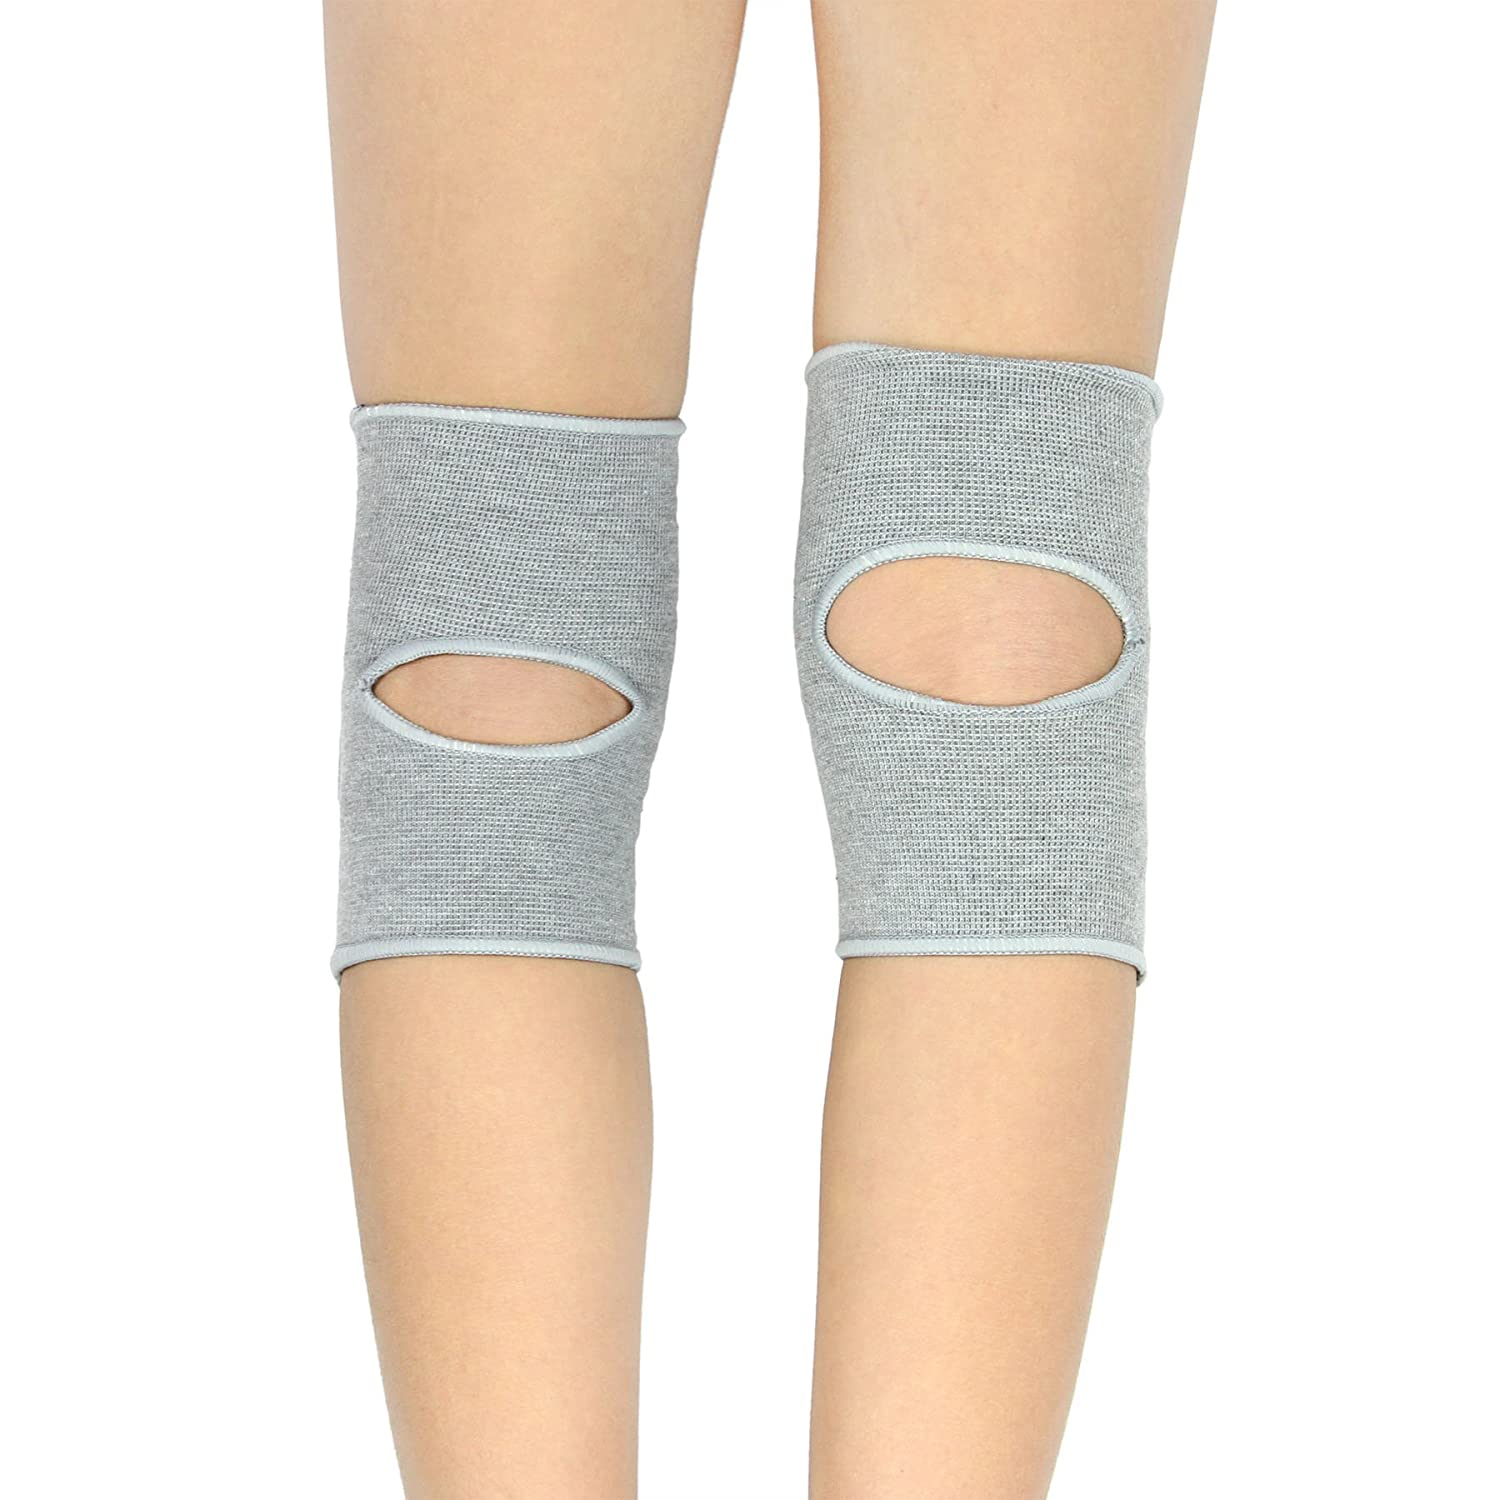 - Knee Support Braces for Running Arthritis and Injury Recovery Tomons Knee Brace Compression Sleeves Joint Pain Relief 1 Pair Jogging Youth /& Adult Sizes,Men and Women Sports